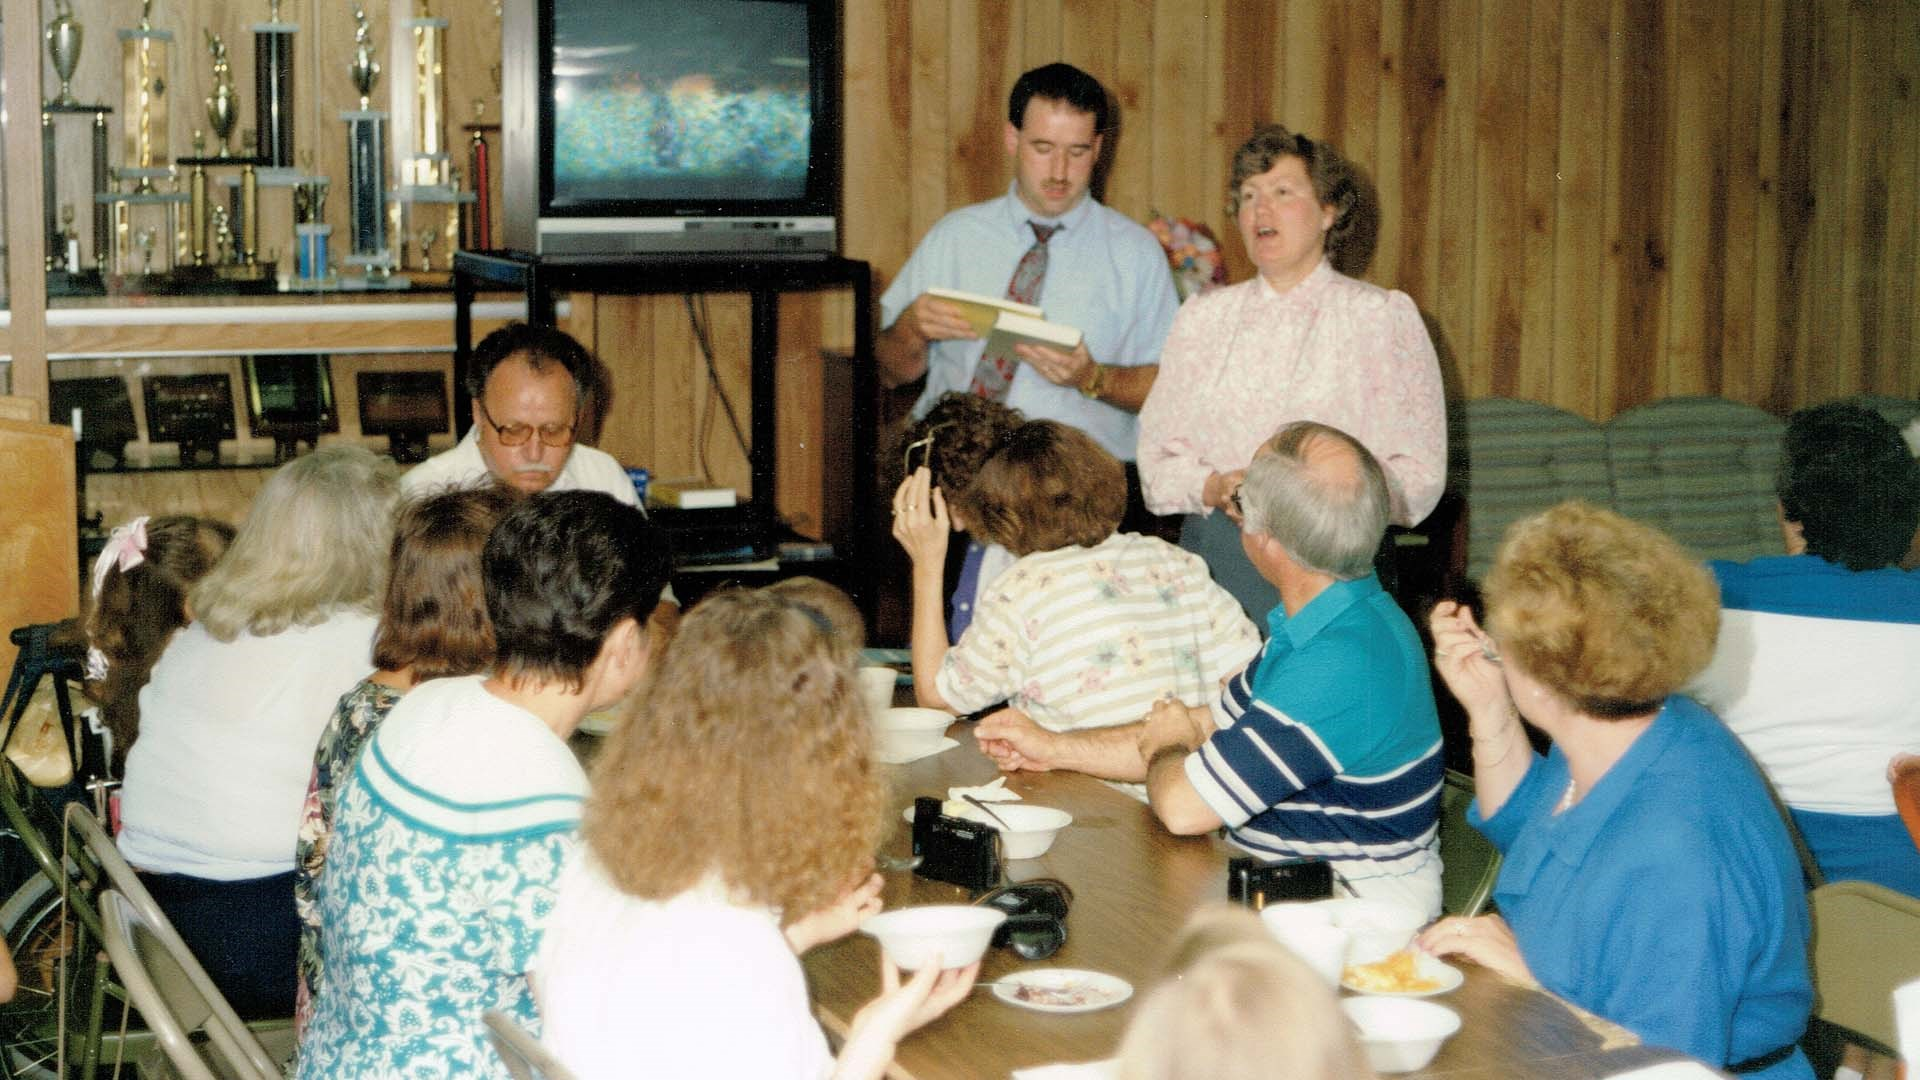 Easley Baptist Church May 1991. A teaching session over food.